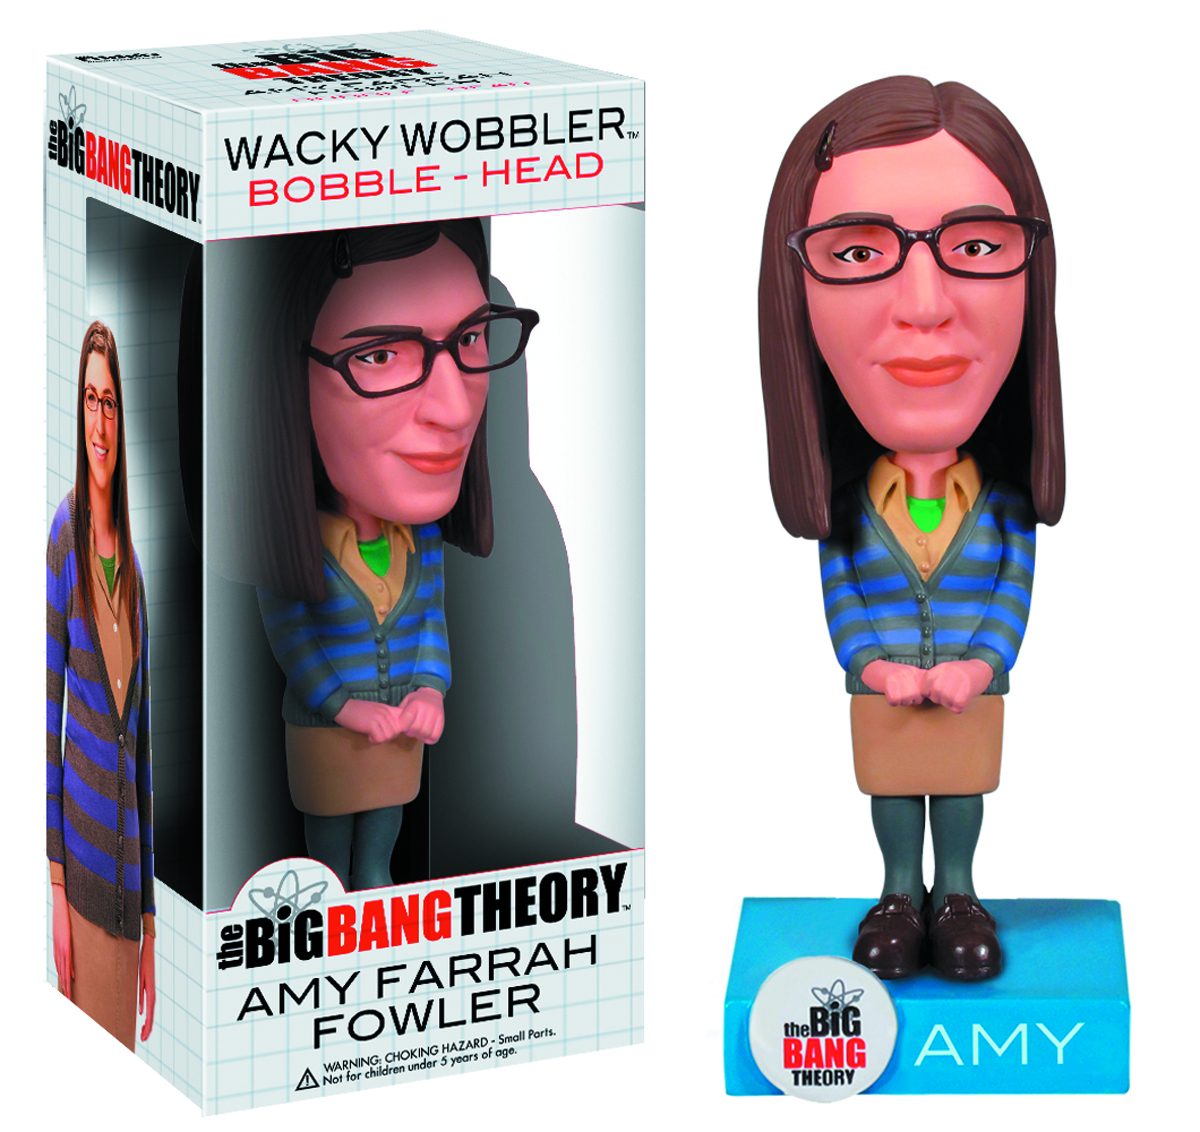 BIG BANG THEORY AMY WACKY WOBBLER